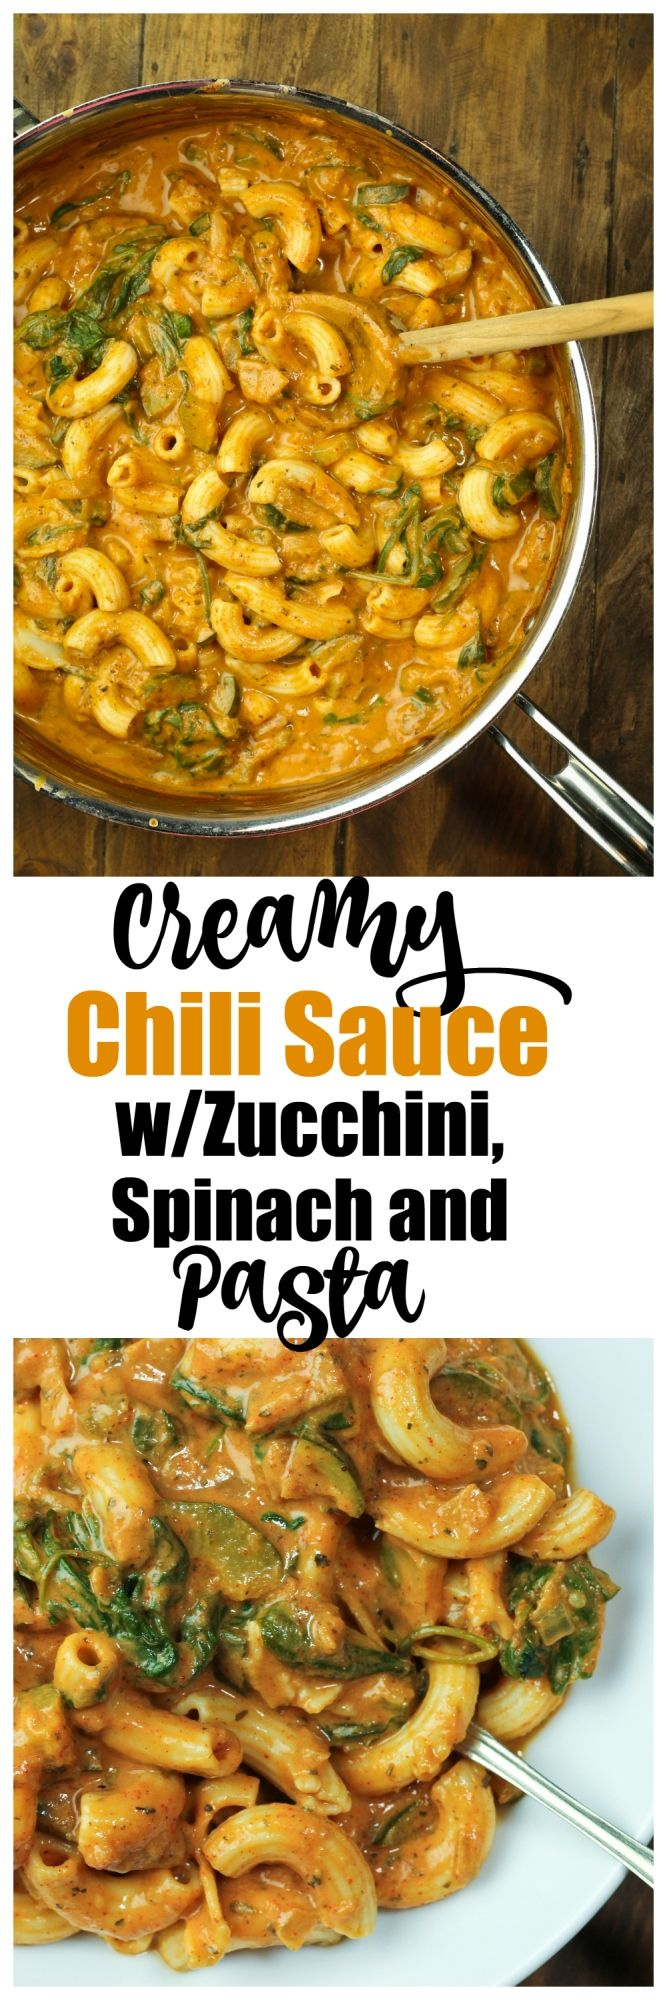 Creamy Chili Sauce with Zucchini, Spinach and Pasta. Pretty good! Used less than 1/2 tsp chili powder and it wasn't spicy but could taste the kick.